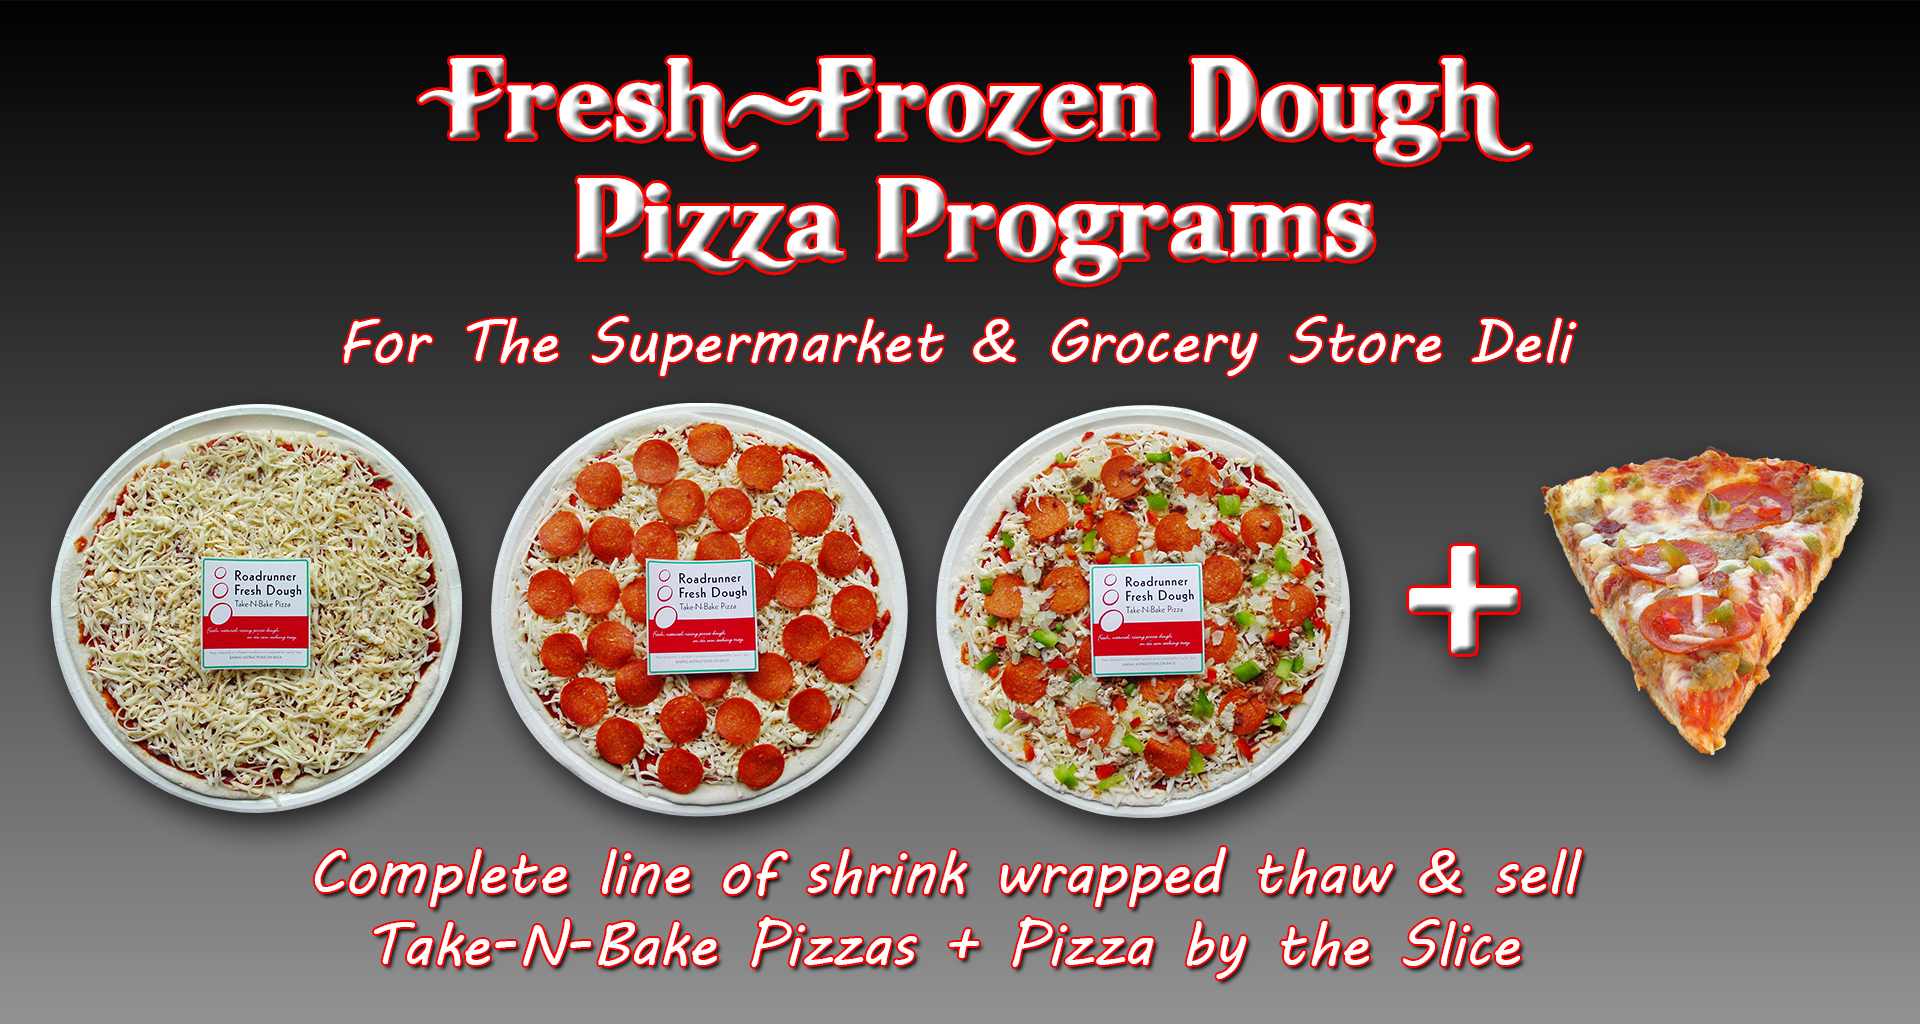 Fresh-Frozen Dough Pizza Programs for the supermarket and grocery store deli